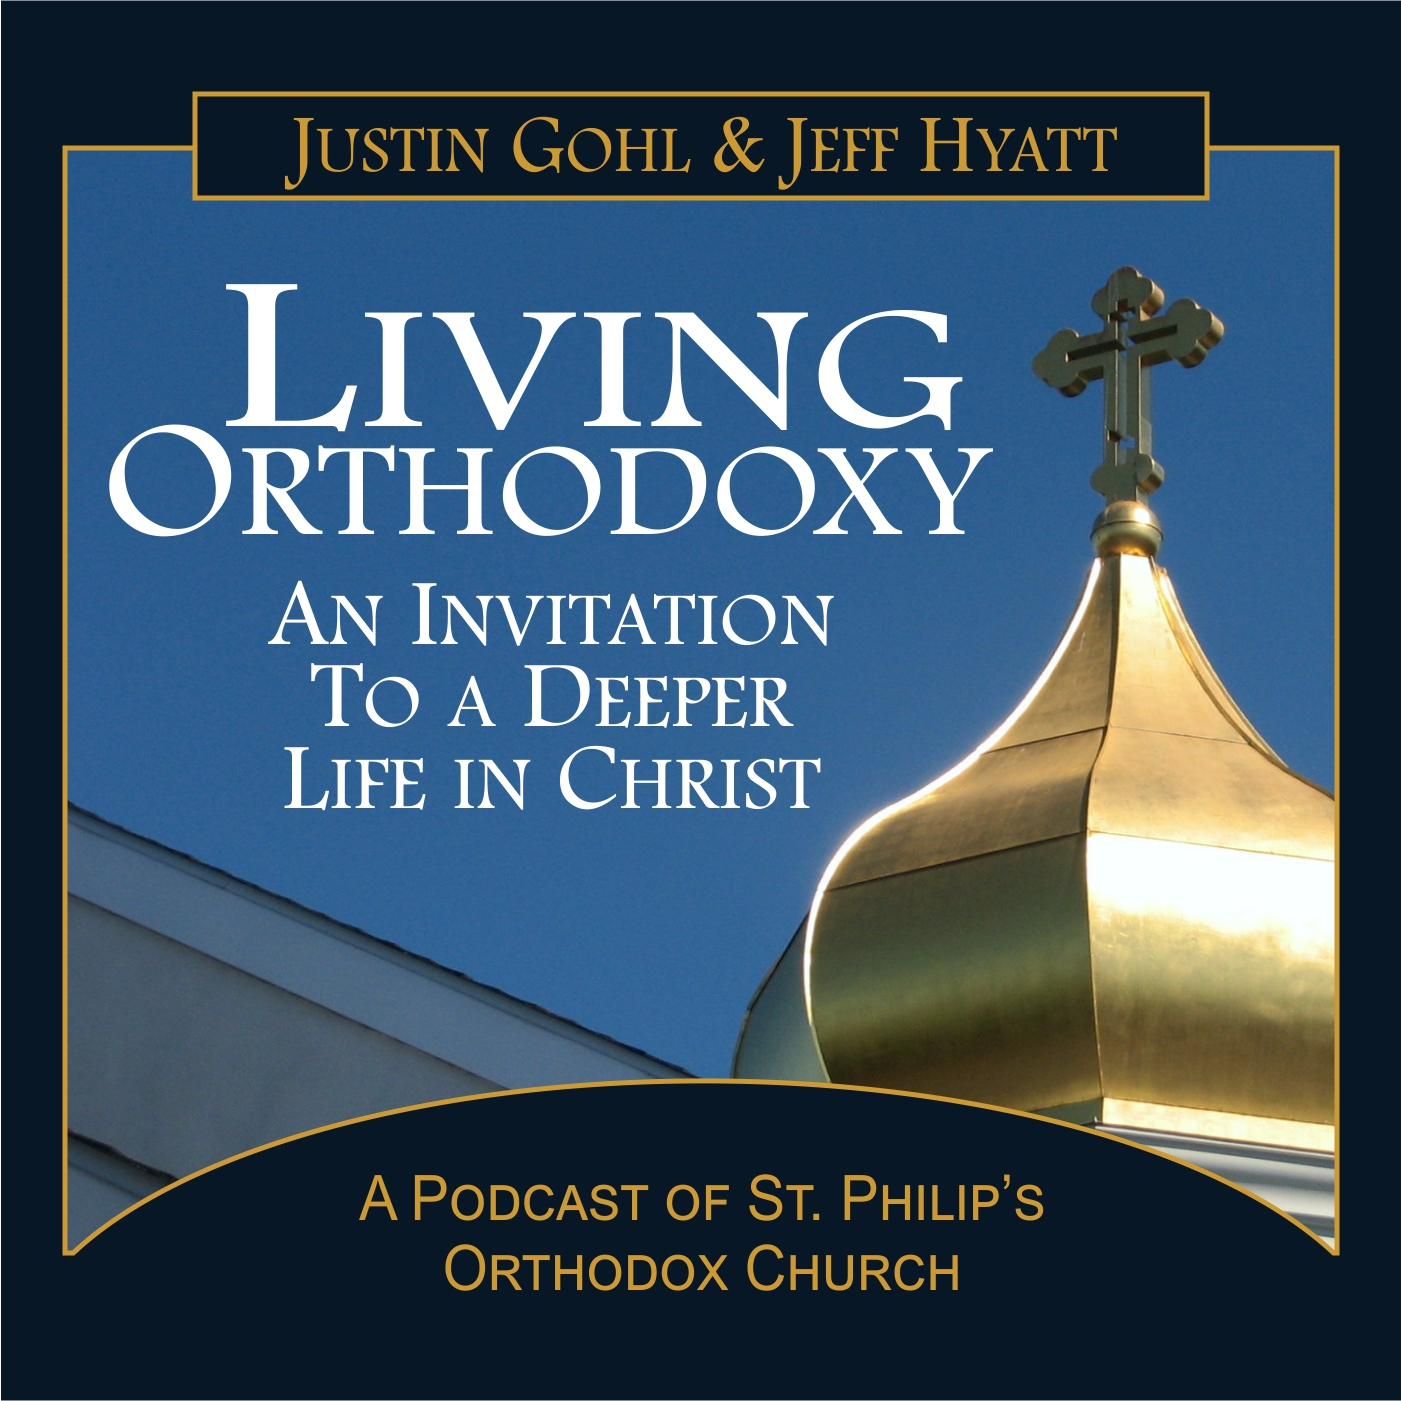 Living Orthodoxy's Podcast